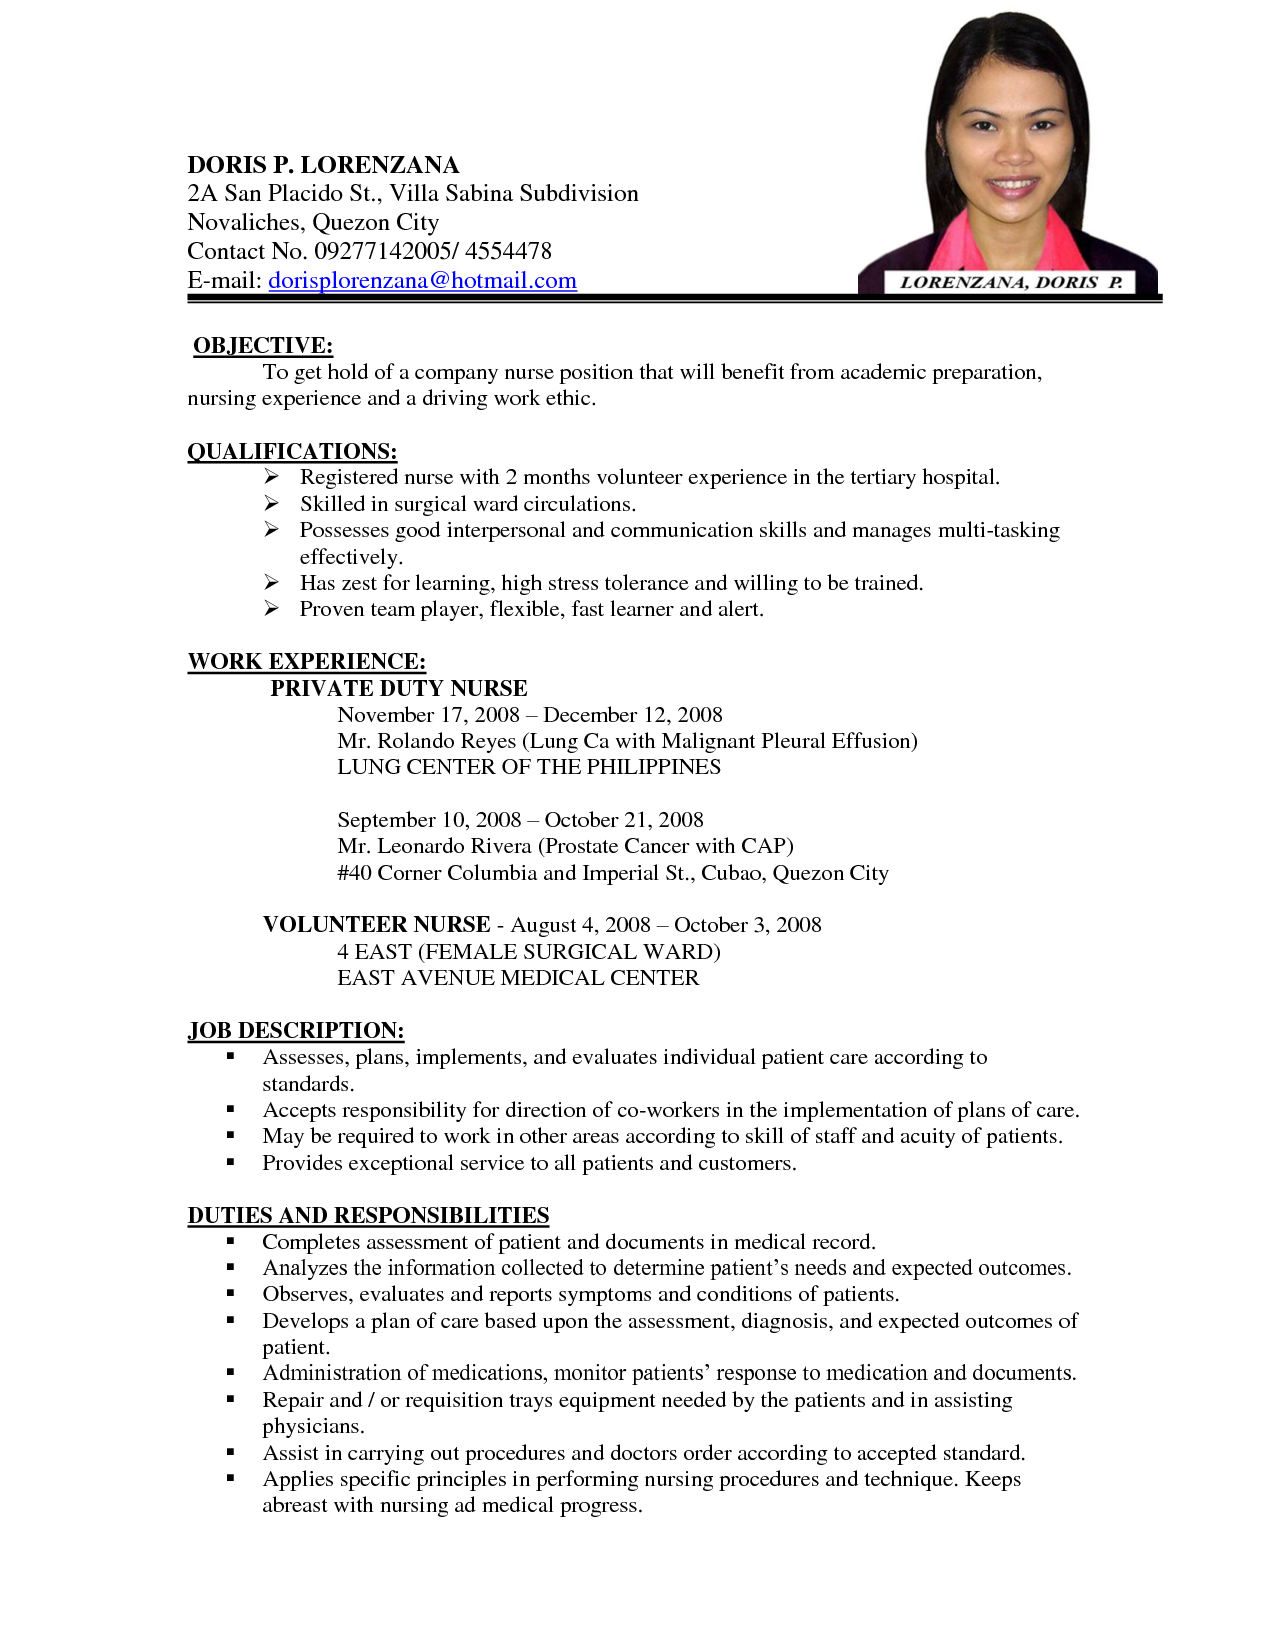 nursing curriculum vitae examples - Google Search | NURSING ...